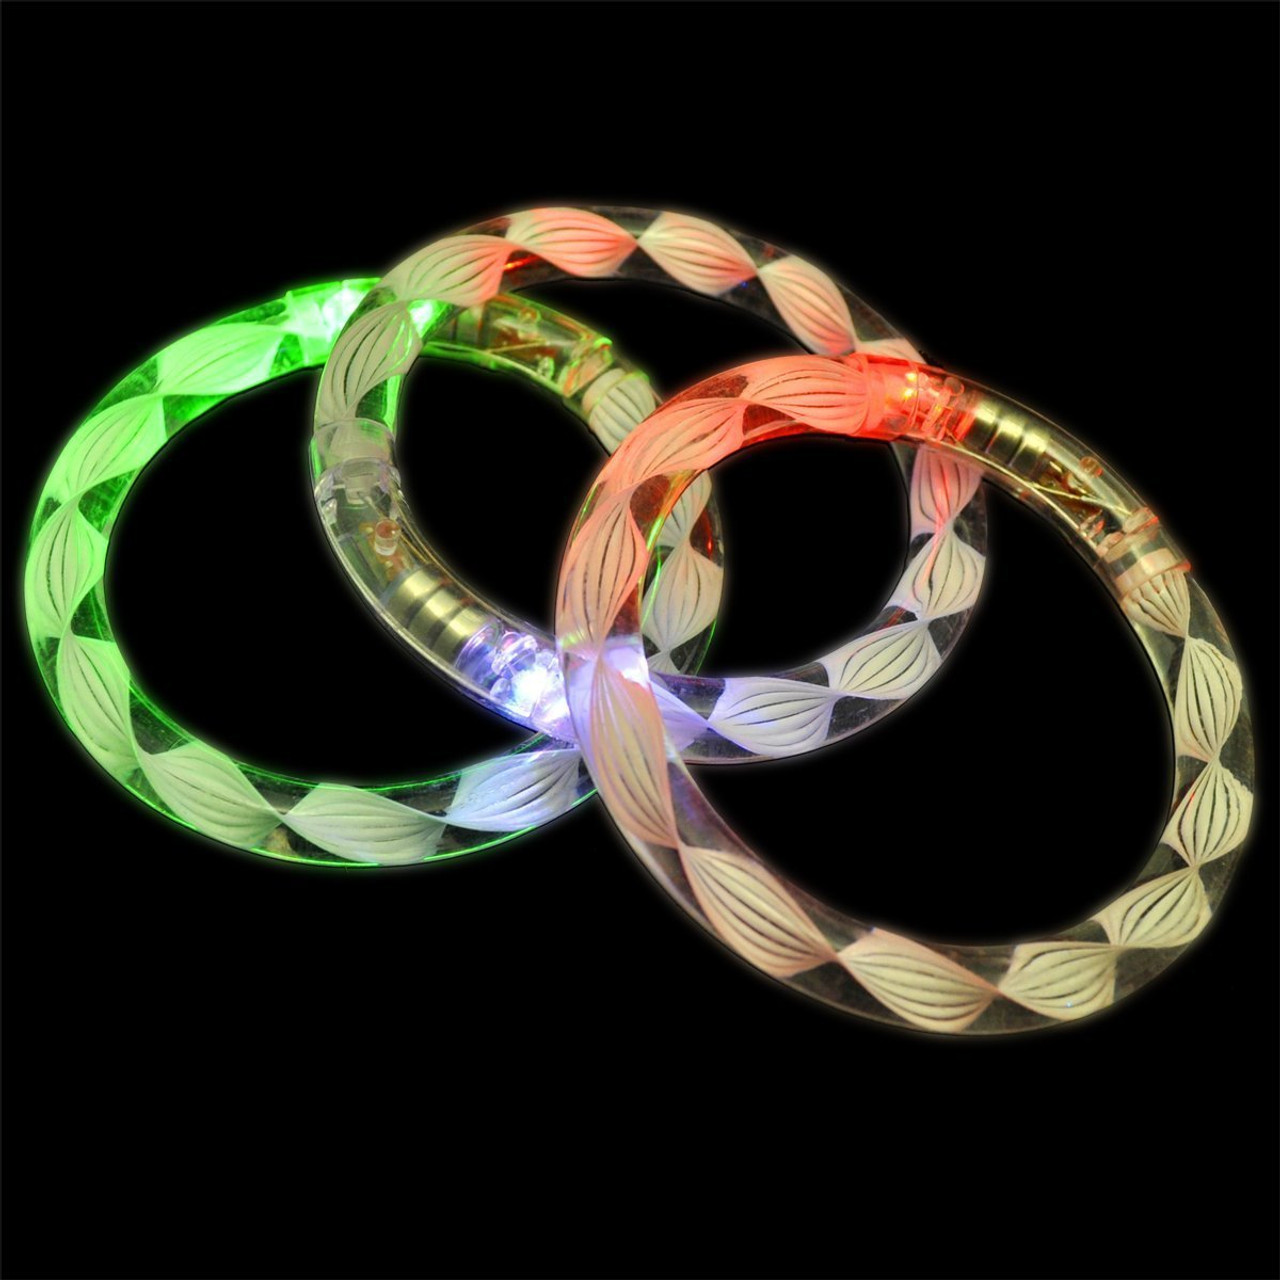 led bracelet,light up, illuminated,wristband,bracelet,rainbow,optical,GLOW, neon, Wedding,Party,favor, wedding party favor,reception,give away, promo,wrist,band